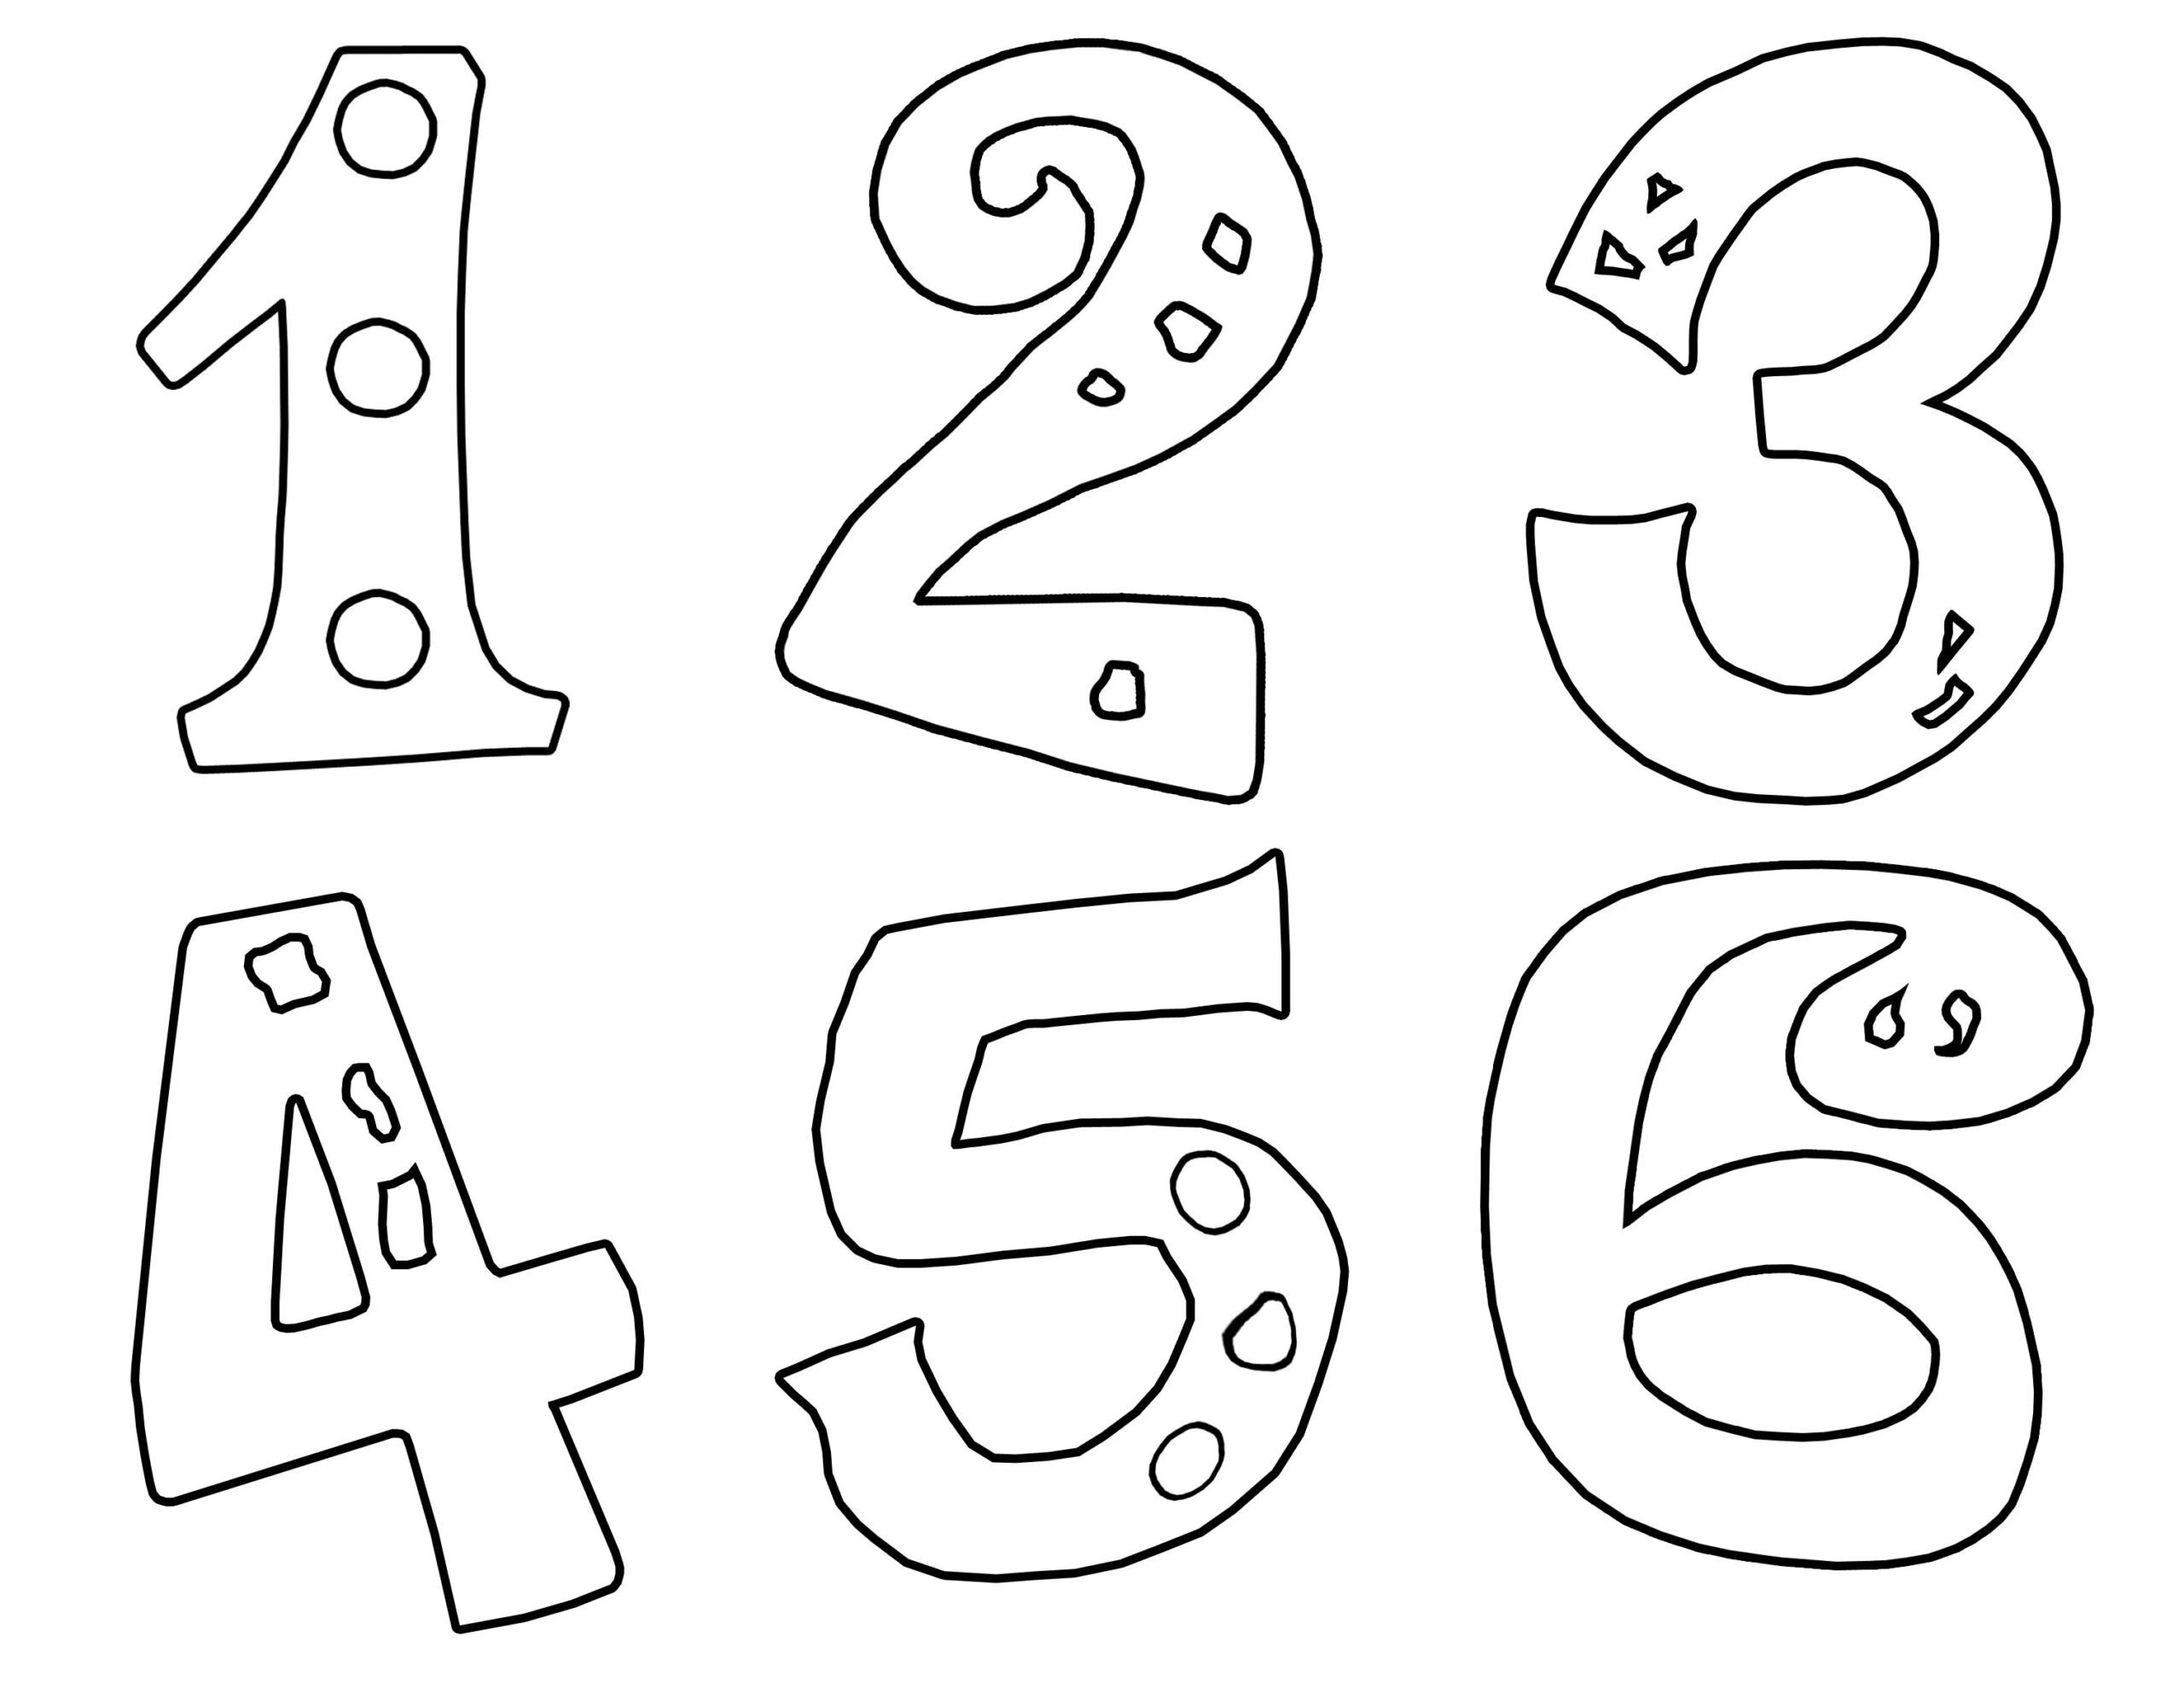 Twisty Noodle Tracing Numbers Worksheet For – Kingandsullivan pertaining to Name Tracing Twisty Noodle